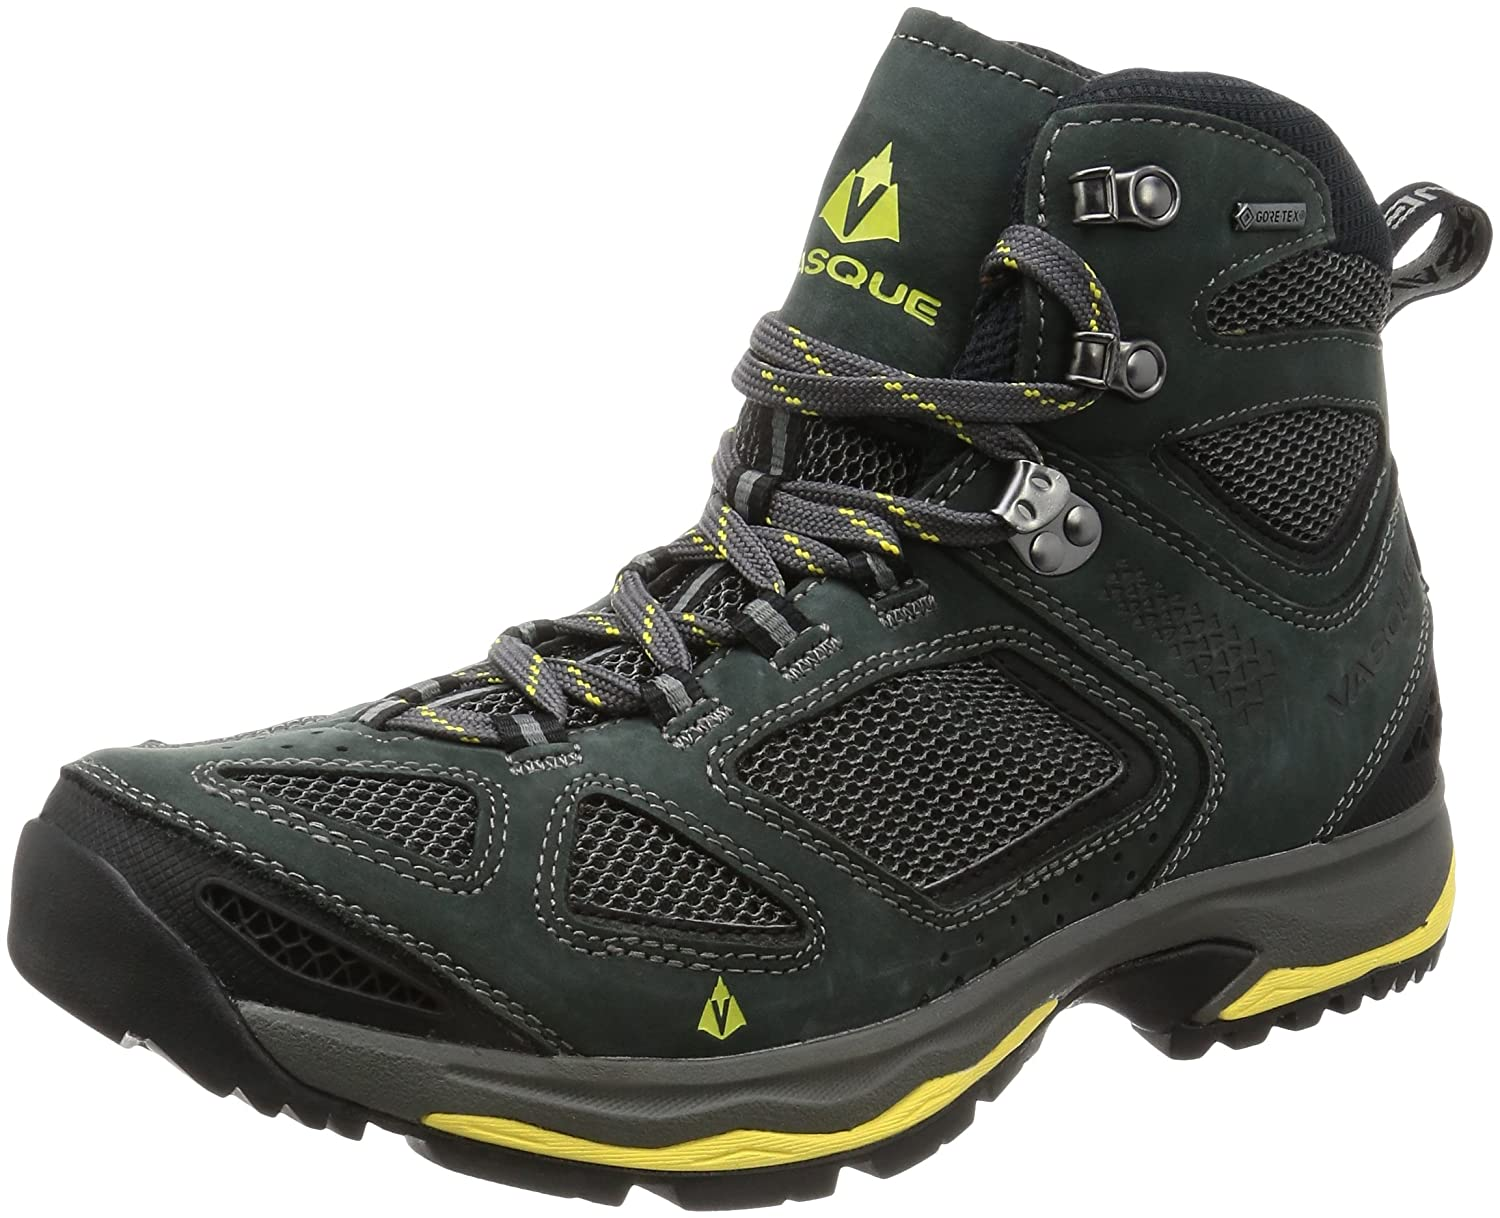 Vasque Menƒ_Ts Breeze III GTX Hiking Boots, Black Olive B01F5JZ06O 8 2E US|Magent / Yellow